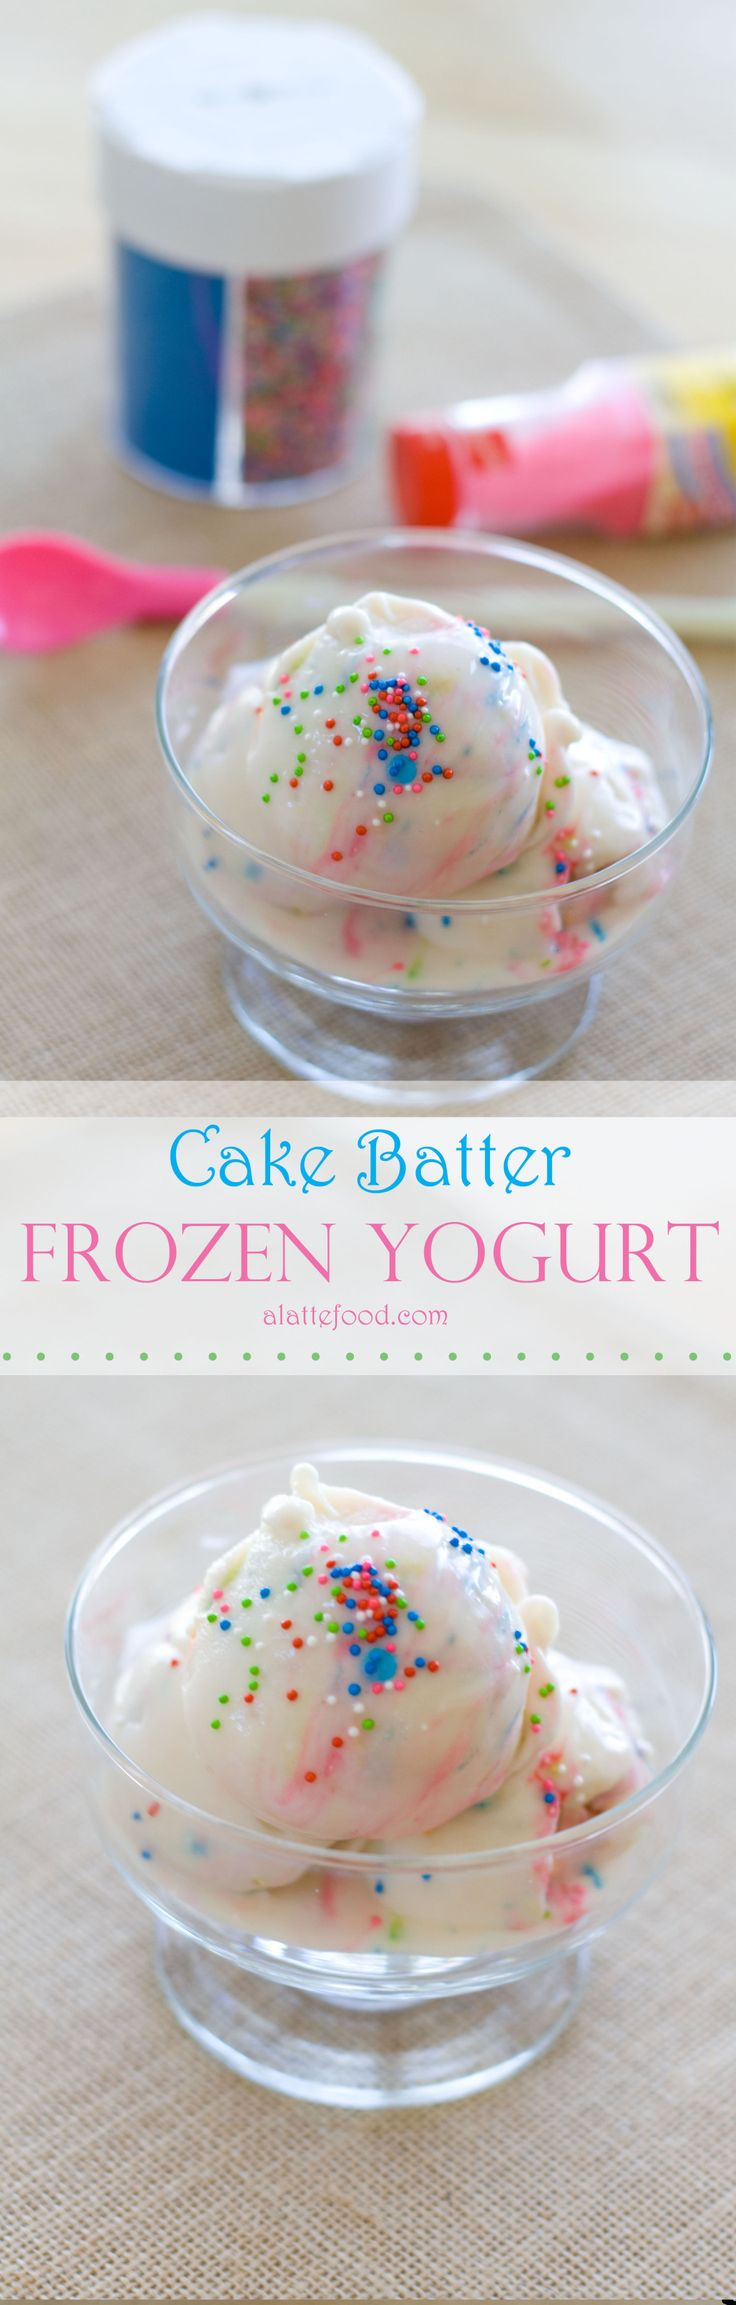 159 best I ♥ ice cream images on Pinterest | Desserts, Postres and ...